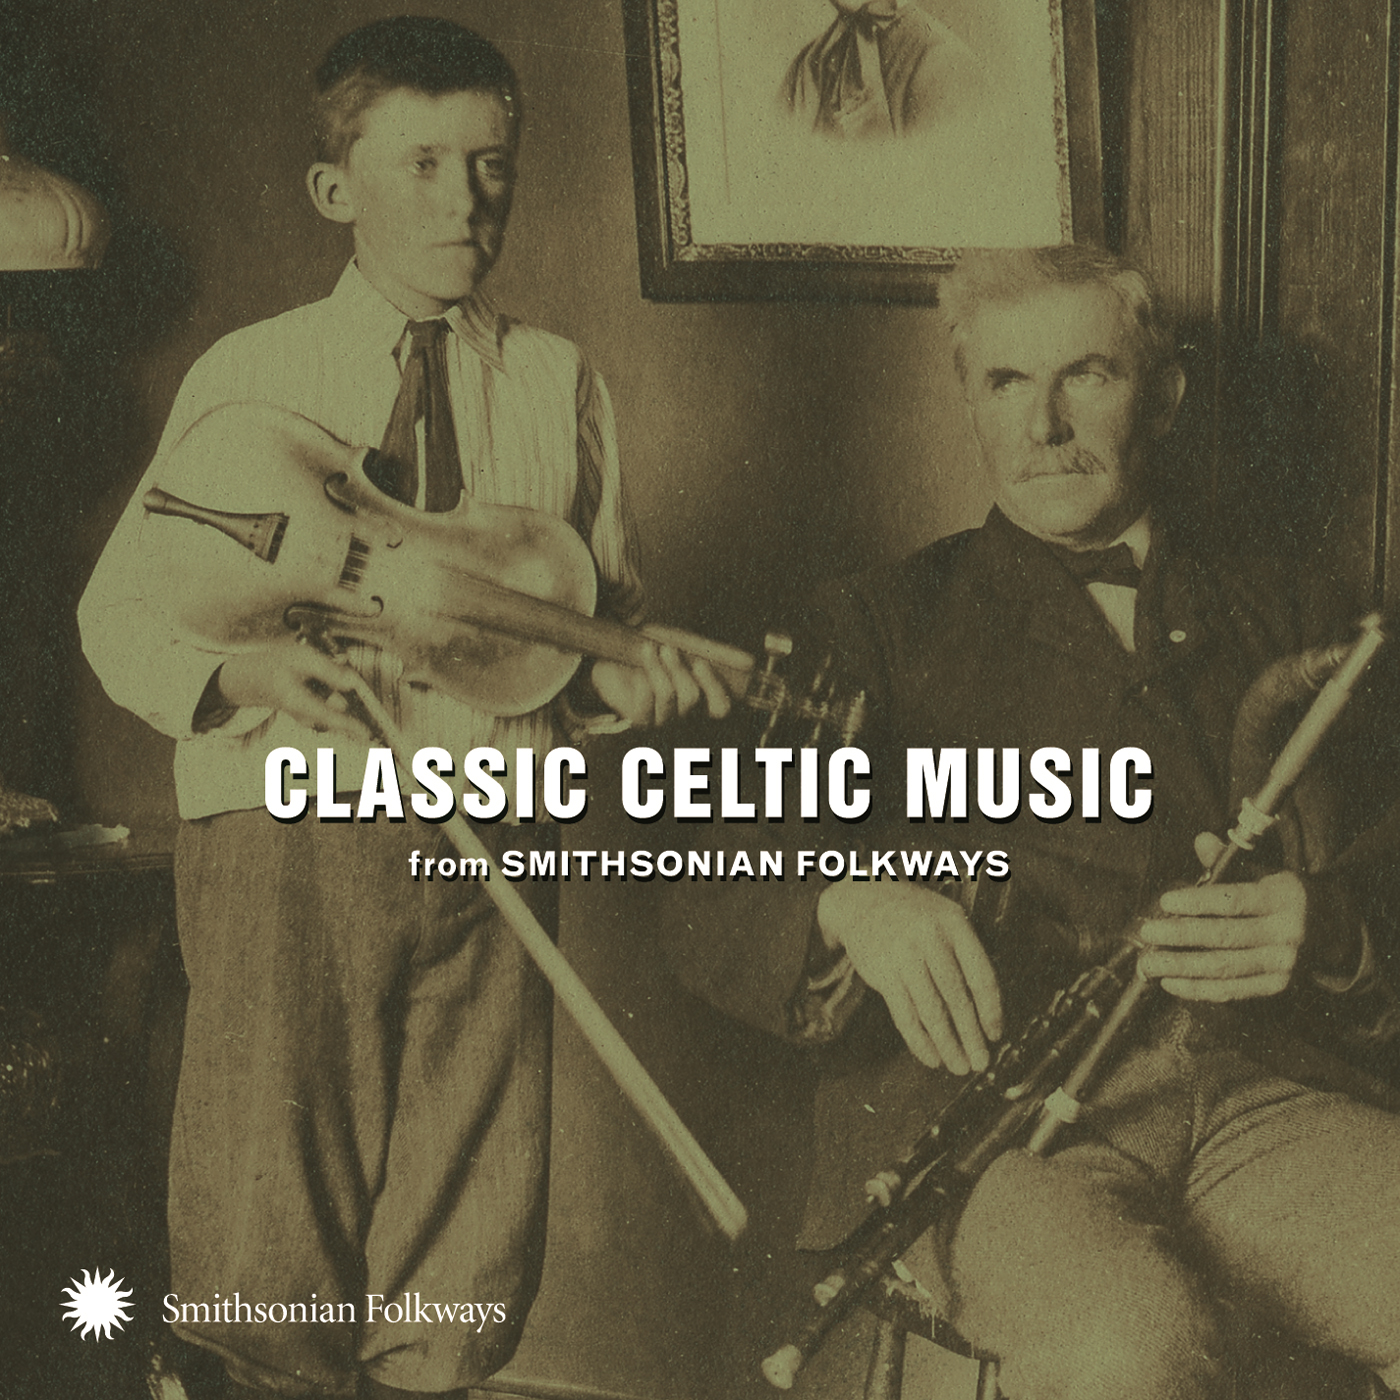 Classic Celtic Music from Smithsonian Folkways | Smithsonian